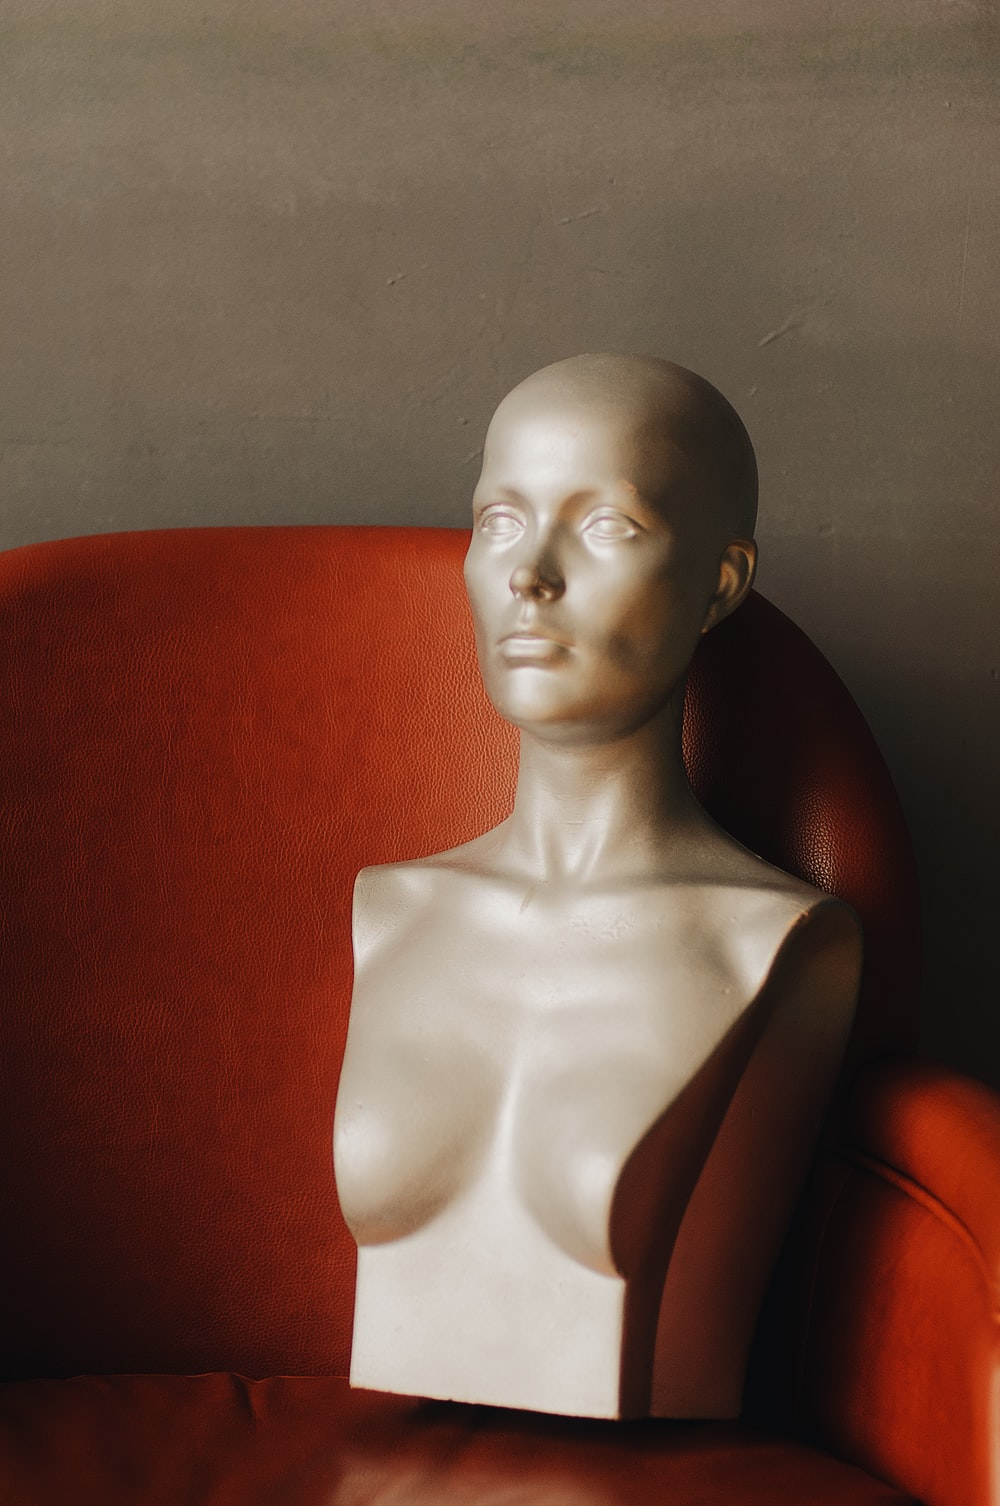 half-body mannequin on red leather chair